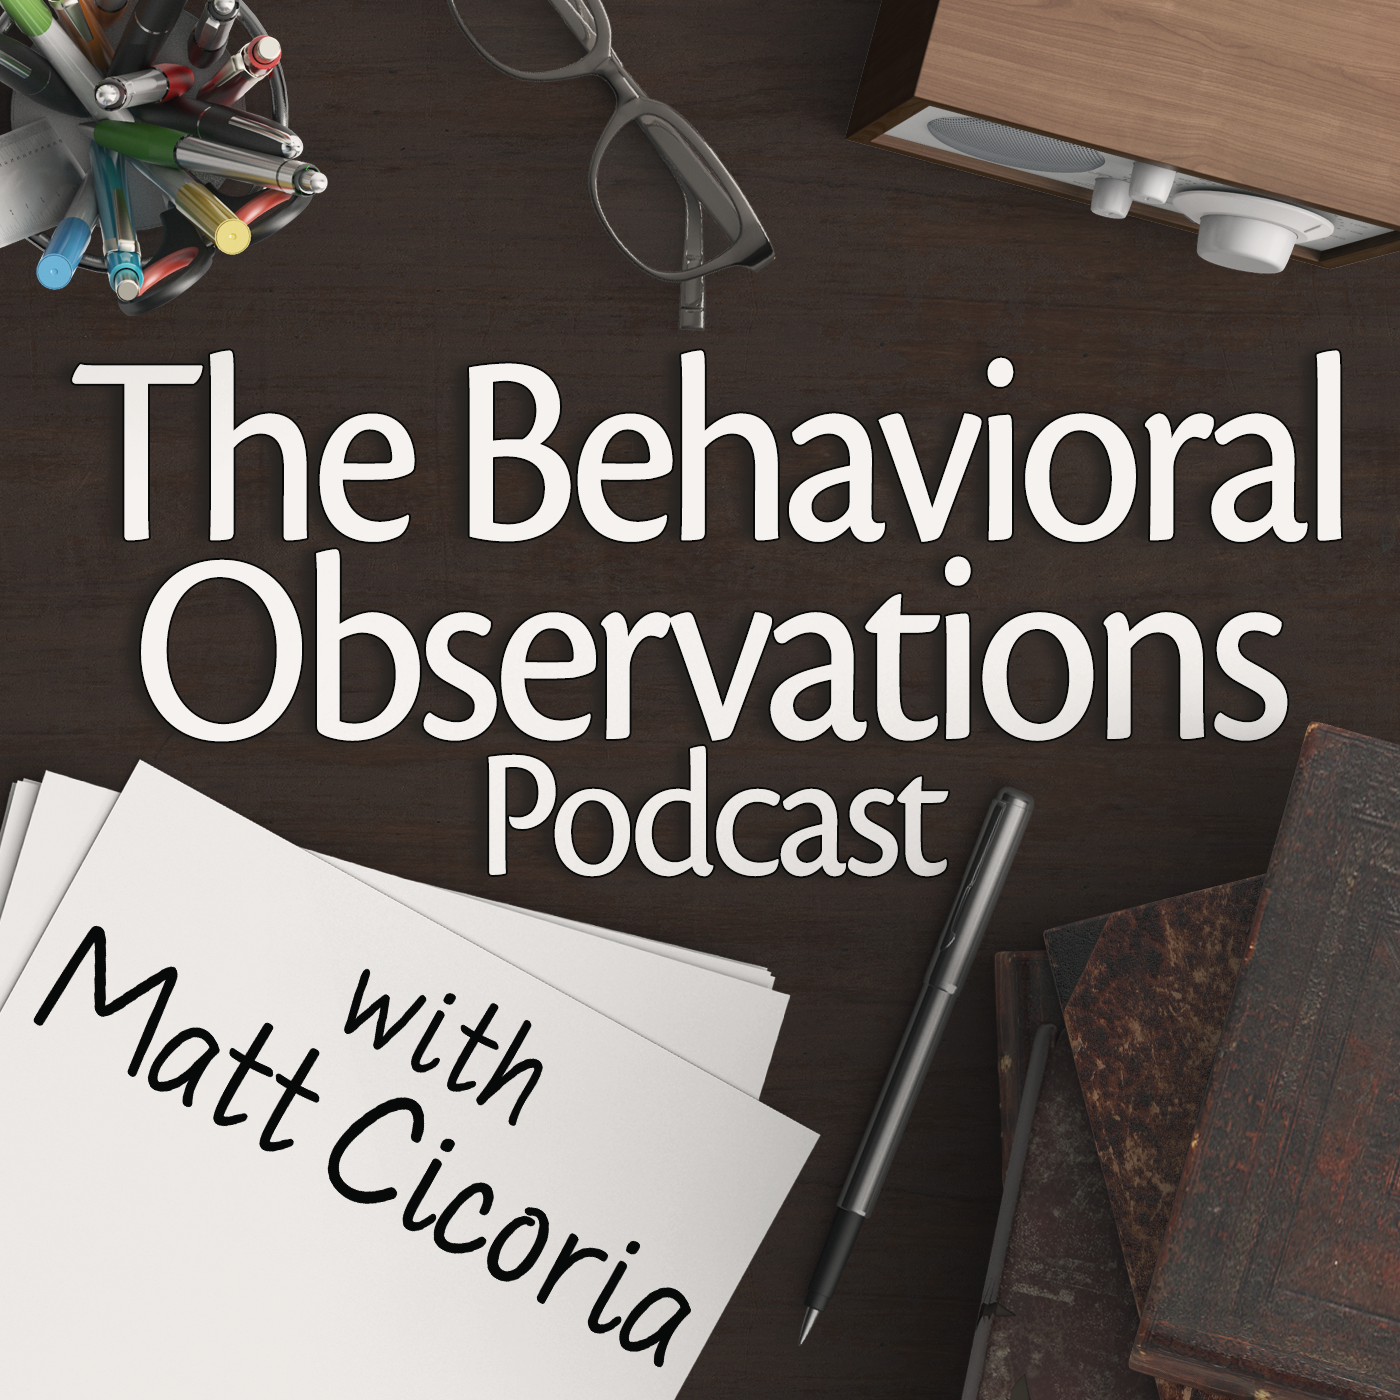 The Behavioral Observations Podcast | ABA | Functional Assessment | Autism | Behaviorism | Acceptance and Commitment Therapy | BCBA Ethics